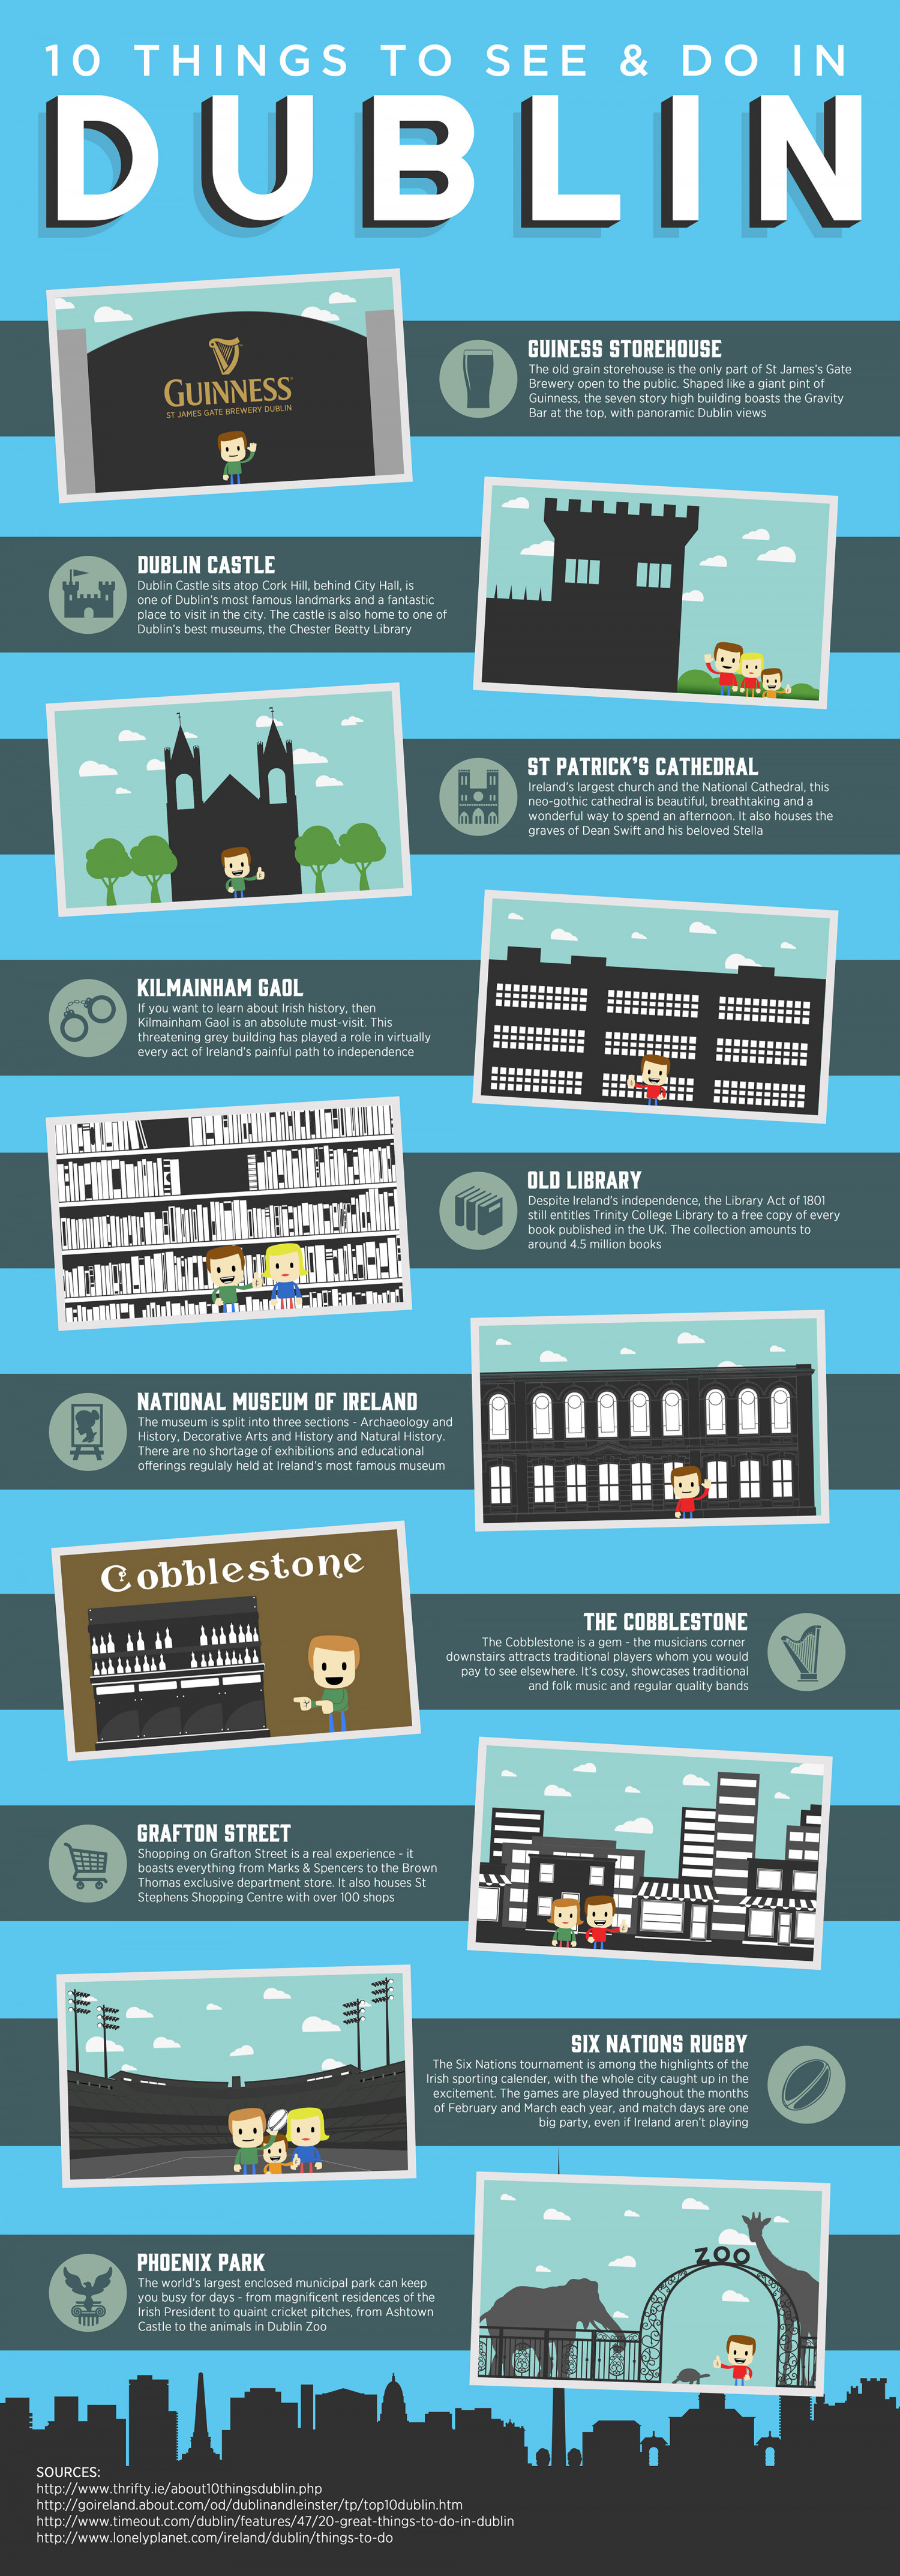 10 Things To See & Do In Dublin Infographic